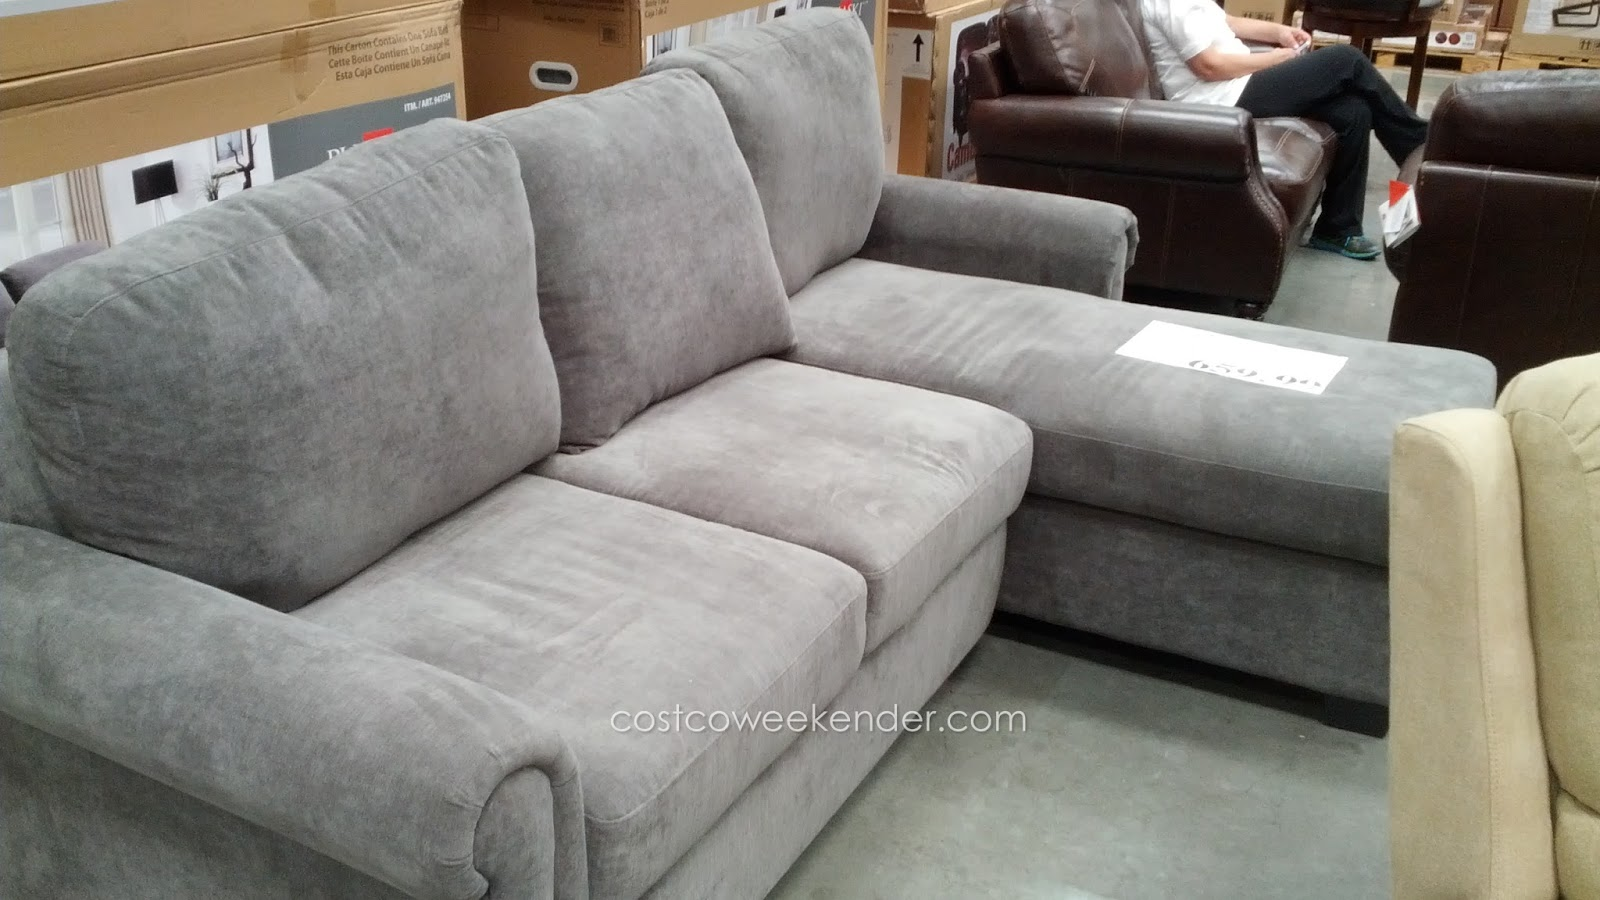 Pulaski newton convertible chaise sofa costco weekender for Chaise lounge costco